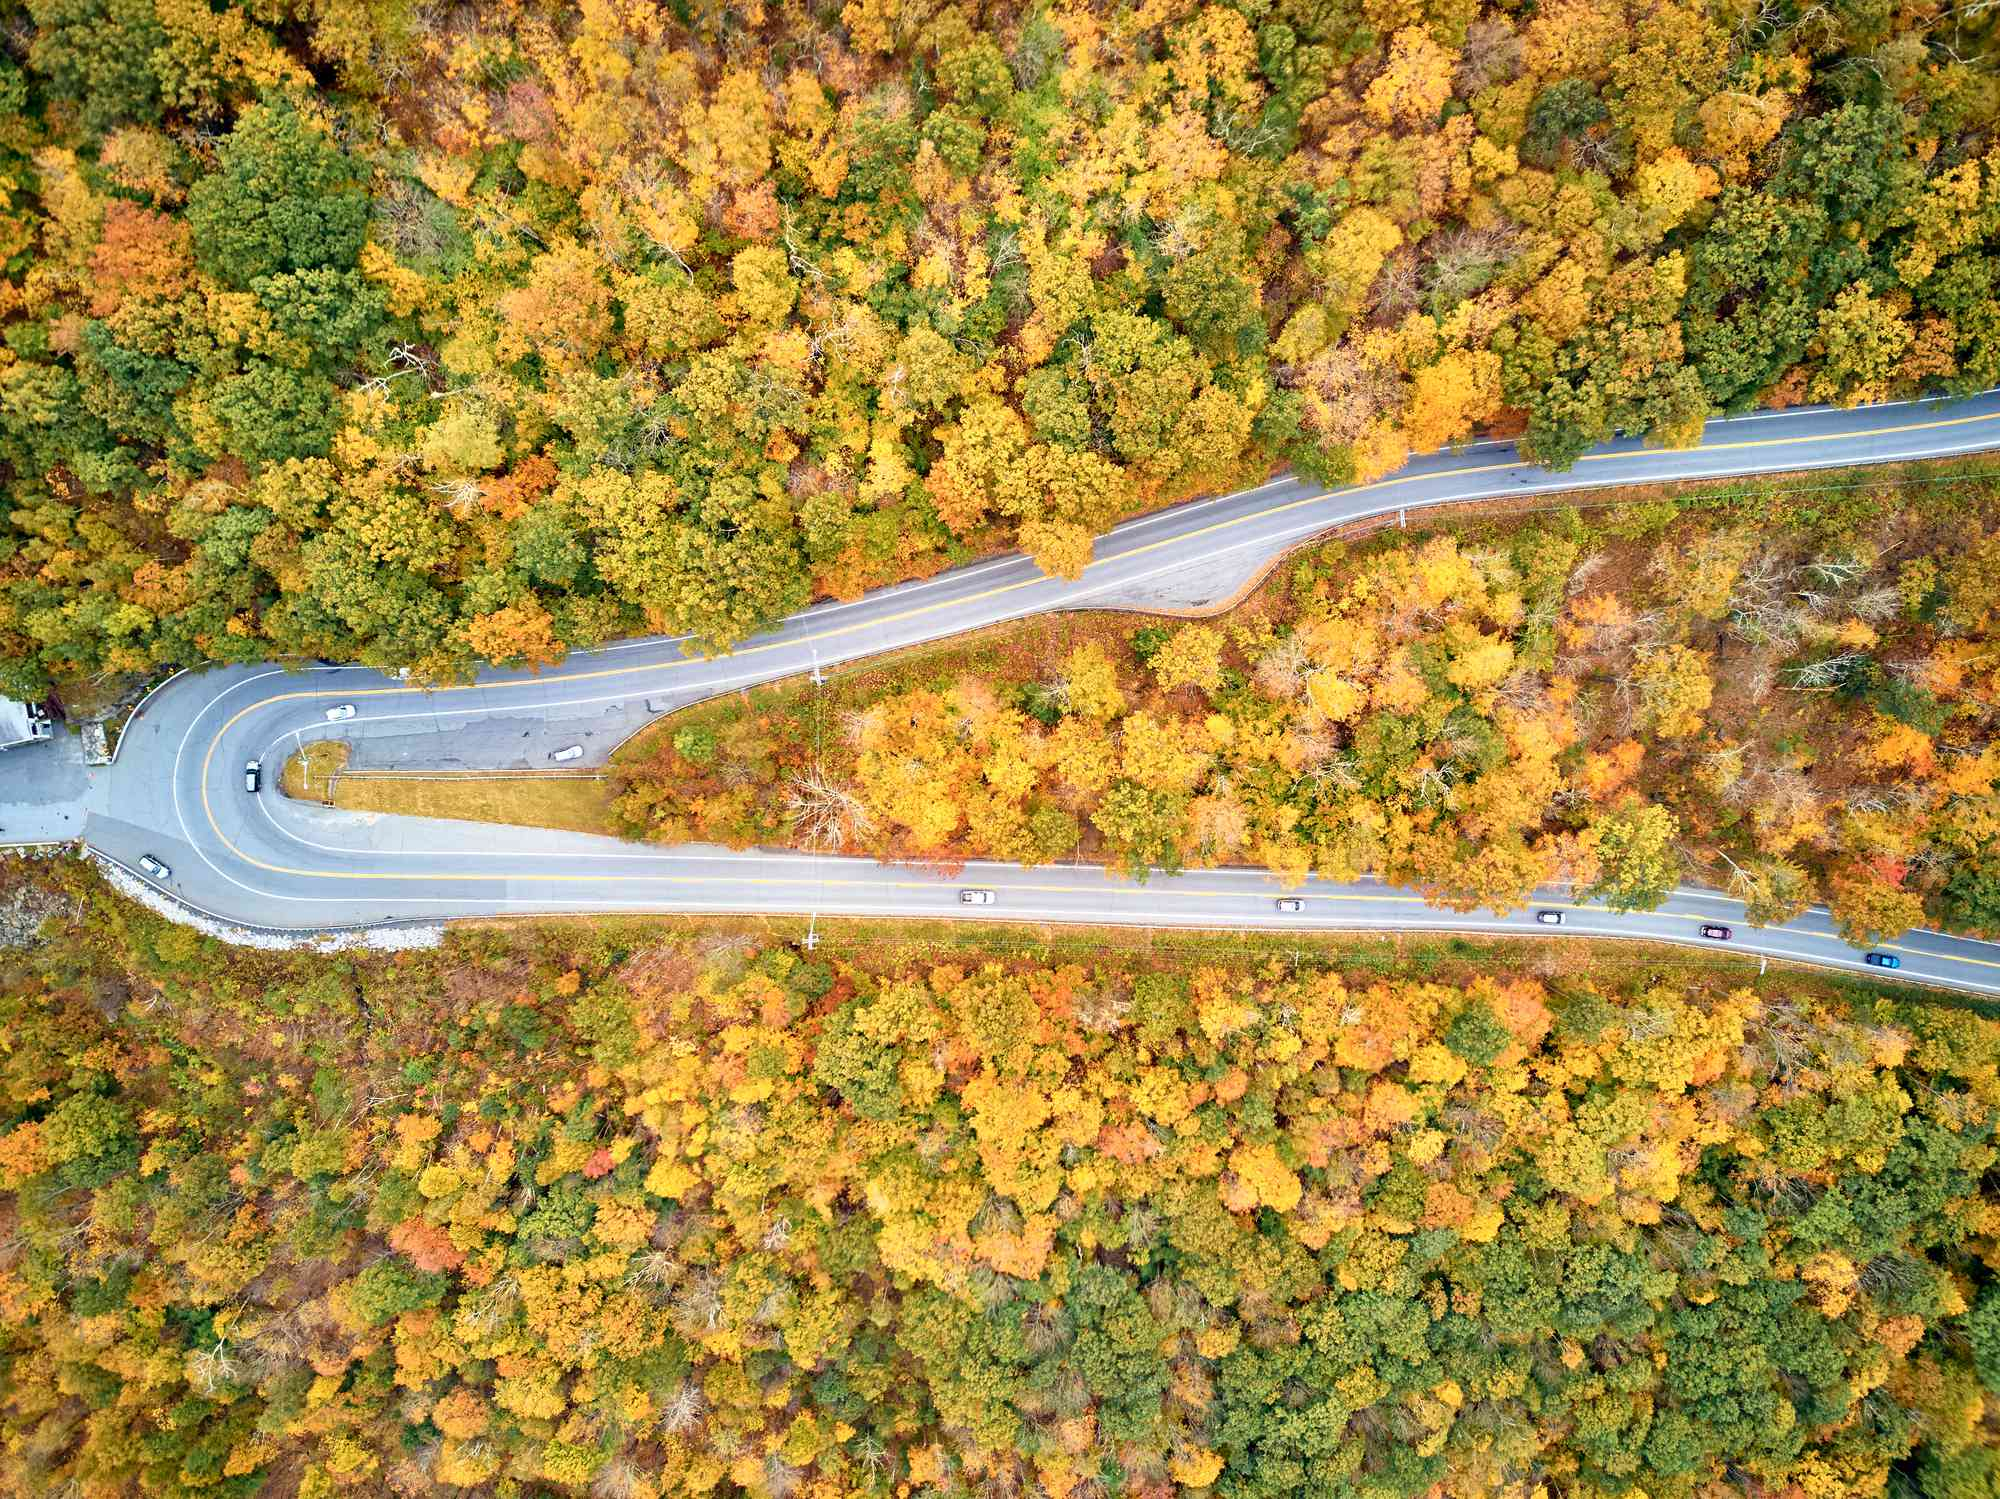 aeiral view of a hairpin turn through a yellow and green forest